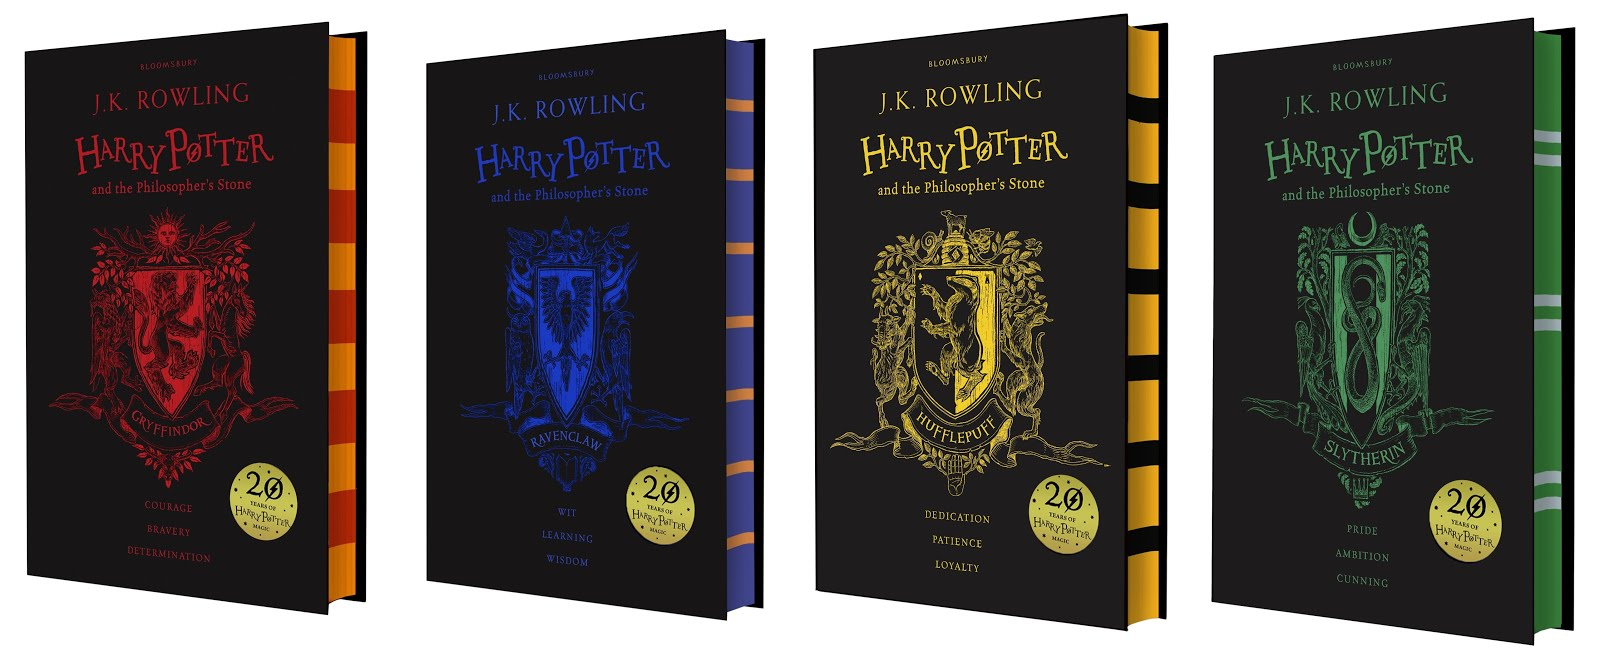 Harry Potter Welches Haus Harry Potter Hogwarts Haus Edition Alinakunterbunt